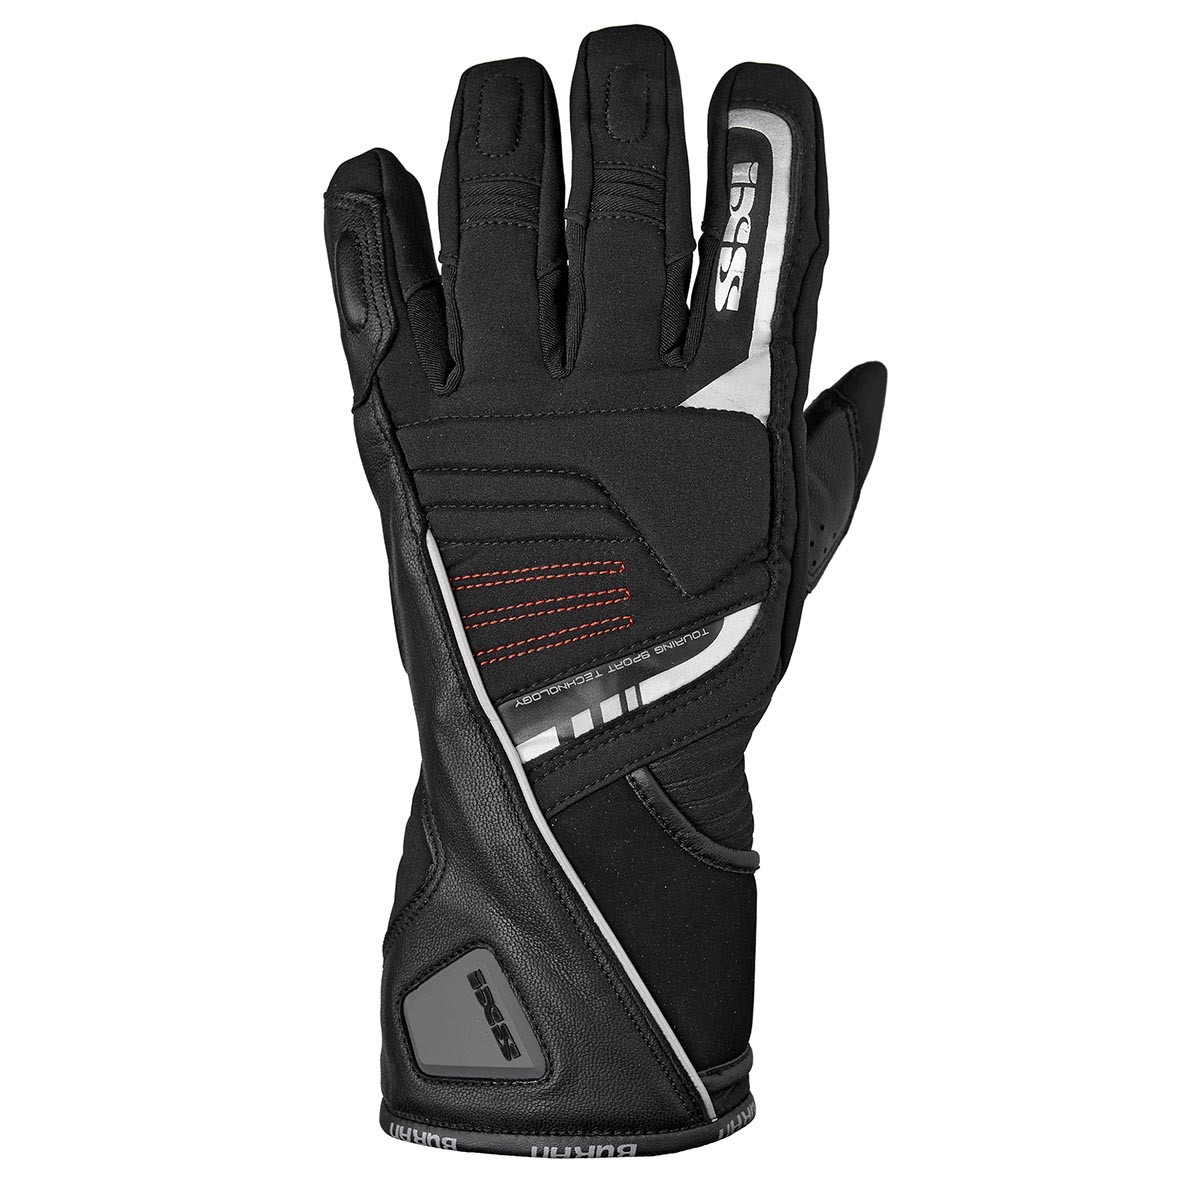 BURAN-ST WINTER GLOVE